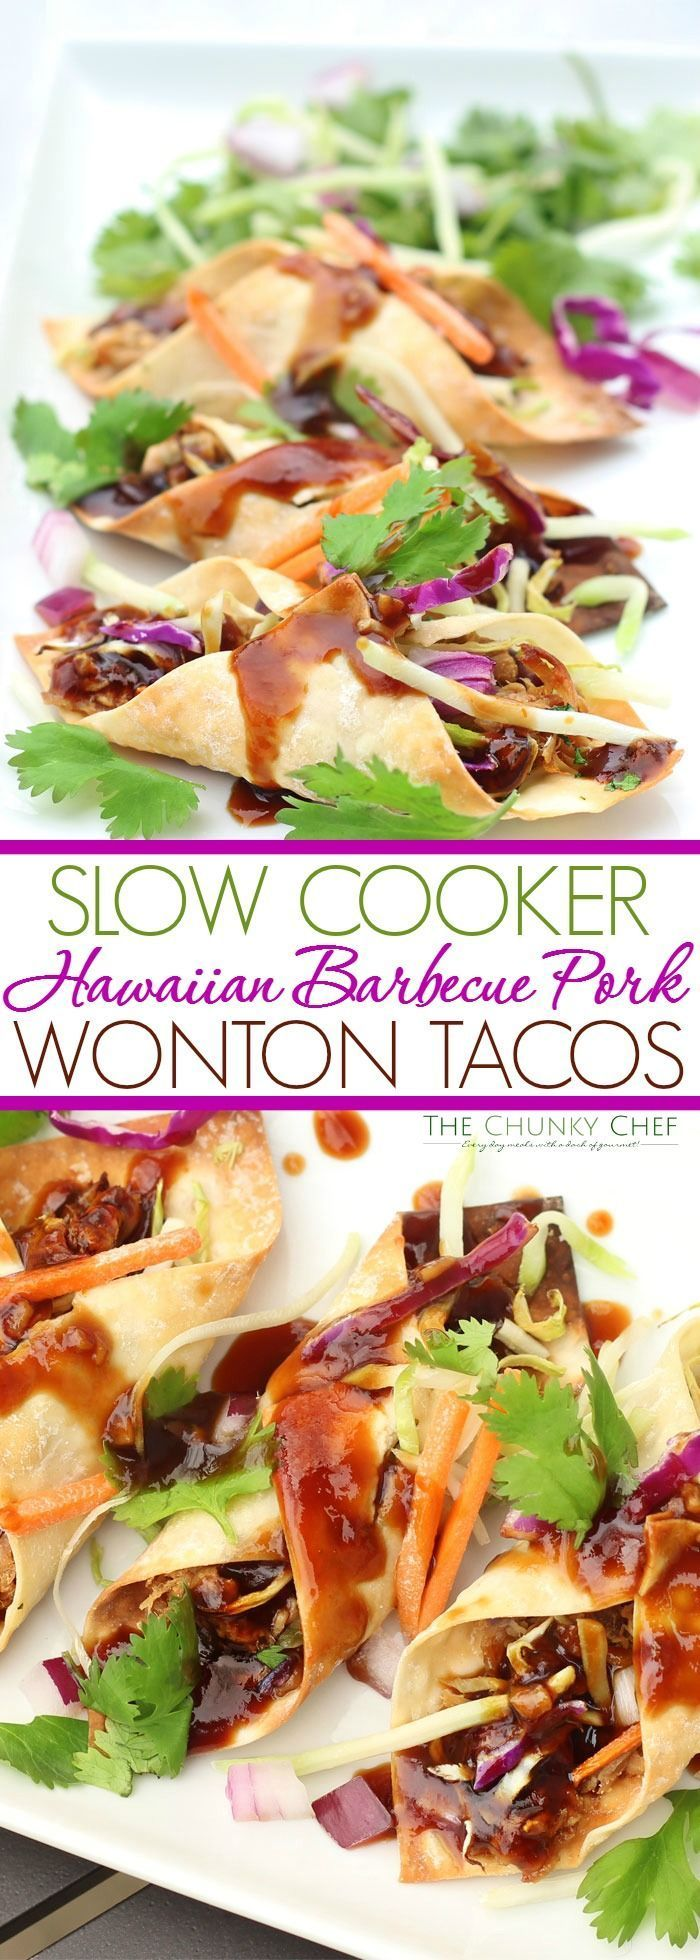 Slow Cooker Hawaiian BBQ Pork Wonton Tacos | This Hawaiian BBQ pork is made easy by using a slow cooker, then wrapped up in crispy wonton taco shells and drizzled with a heavenly BBQ sauce! | http://thechunkychef.com